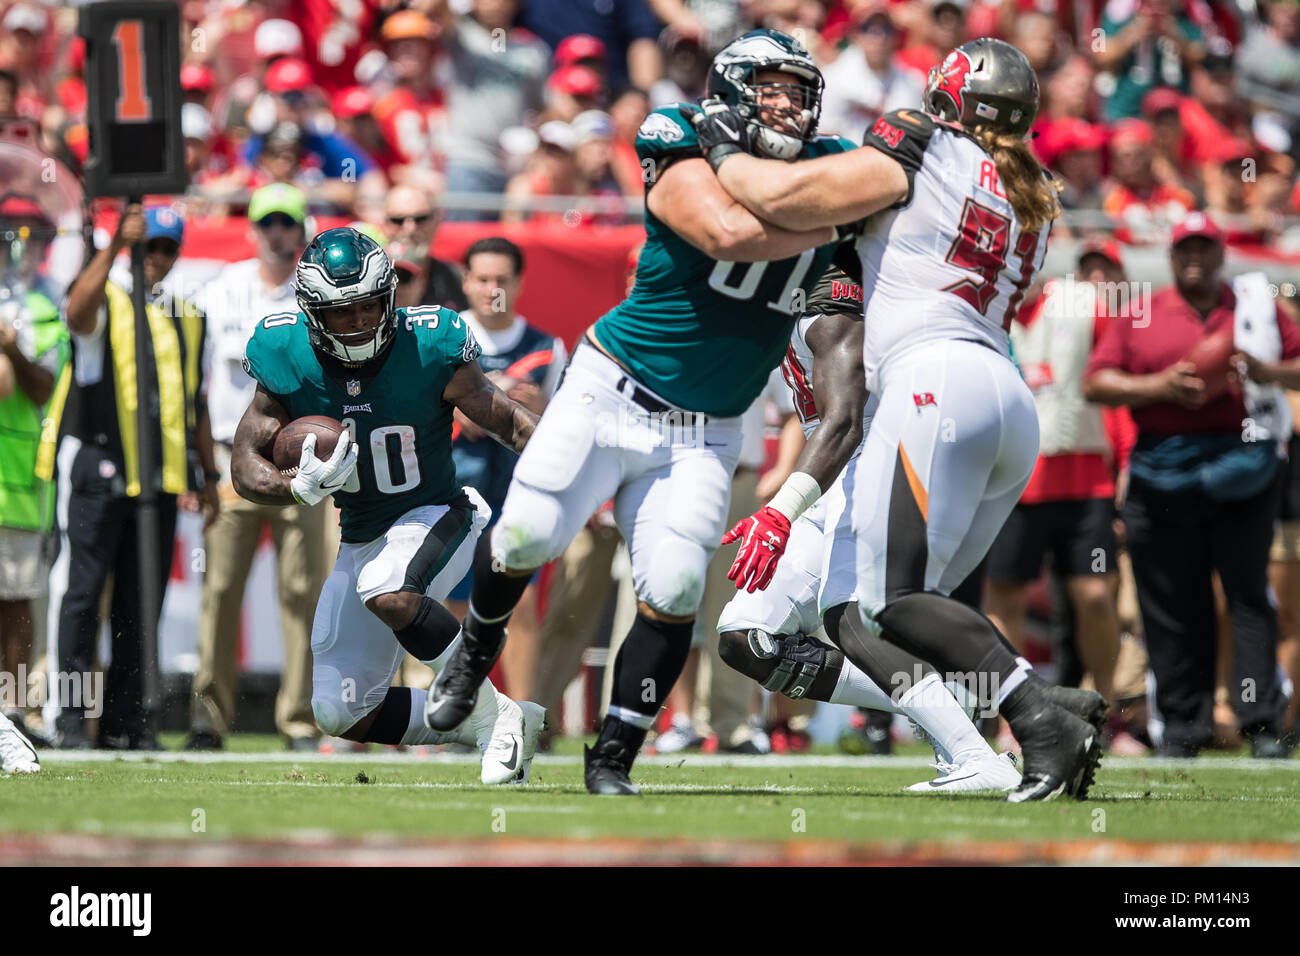 Tampa, Florida, USA. 16th Sep, 2018. Philadelphia Eagles running back Corey Clement (30) receives the ball for a 14 yard gain during the first quarter against the Tampa Bay Buccaneers at Raymond James Stadium on Sunday September 16, 2018 in Tampa, Florida. Credit: Travis Pendergrass/ZUMA Wire/Alamy Live News - Stock Image